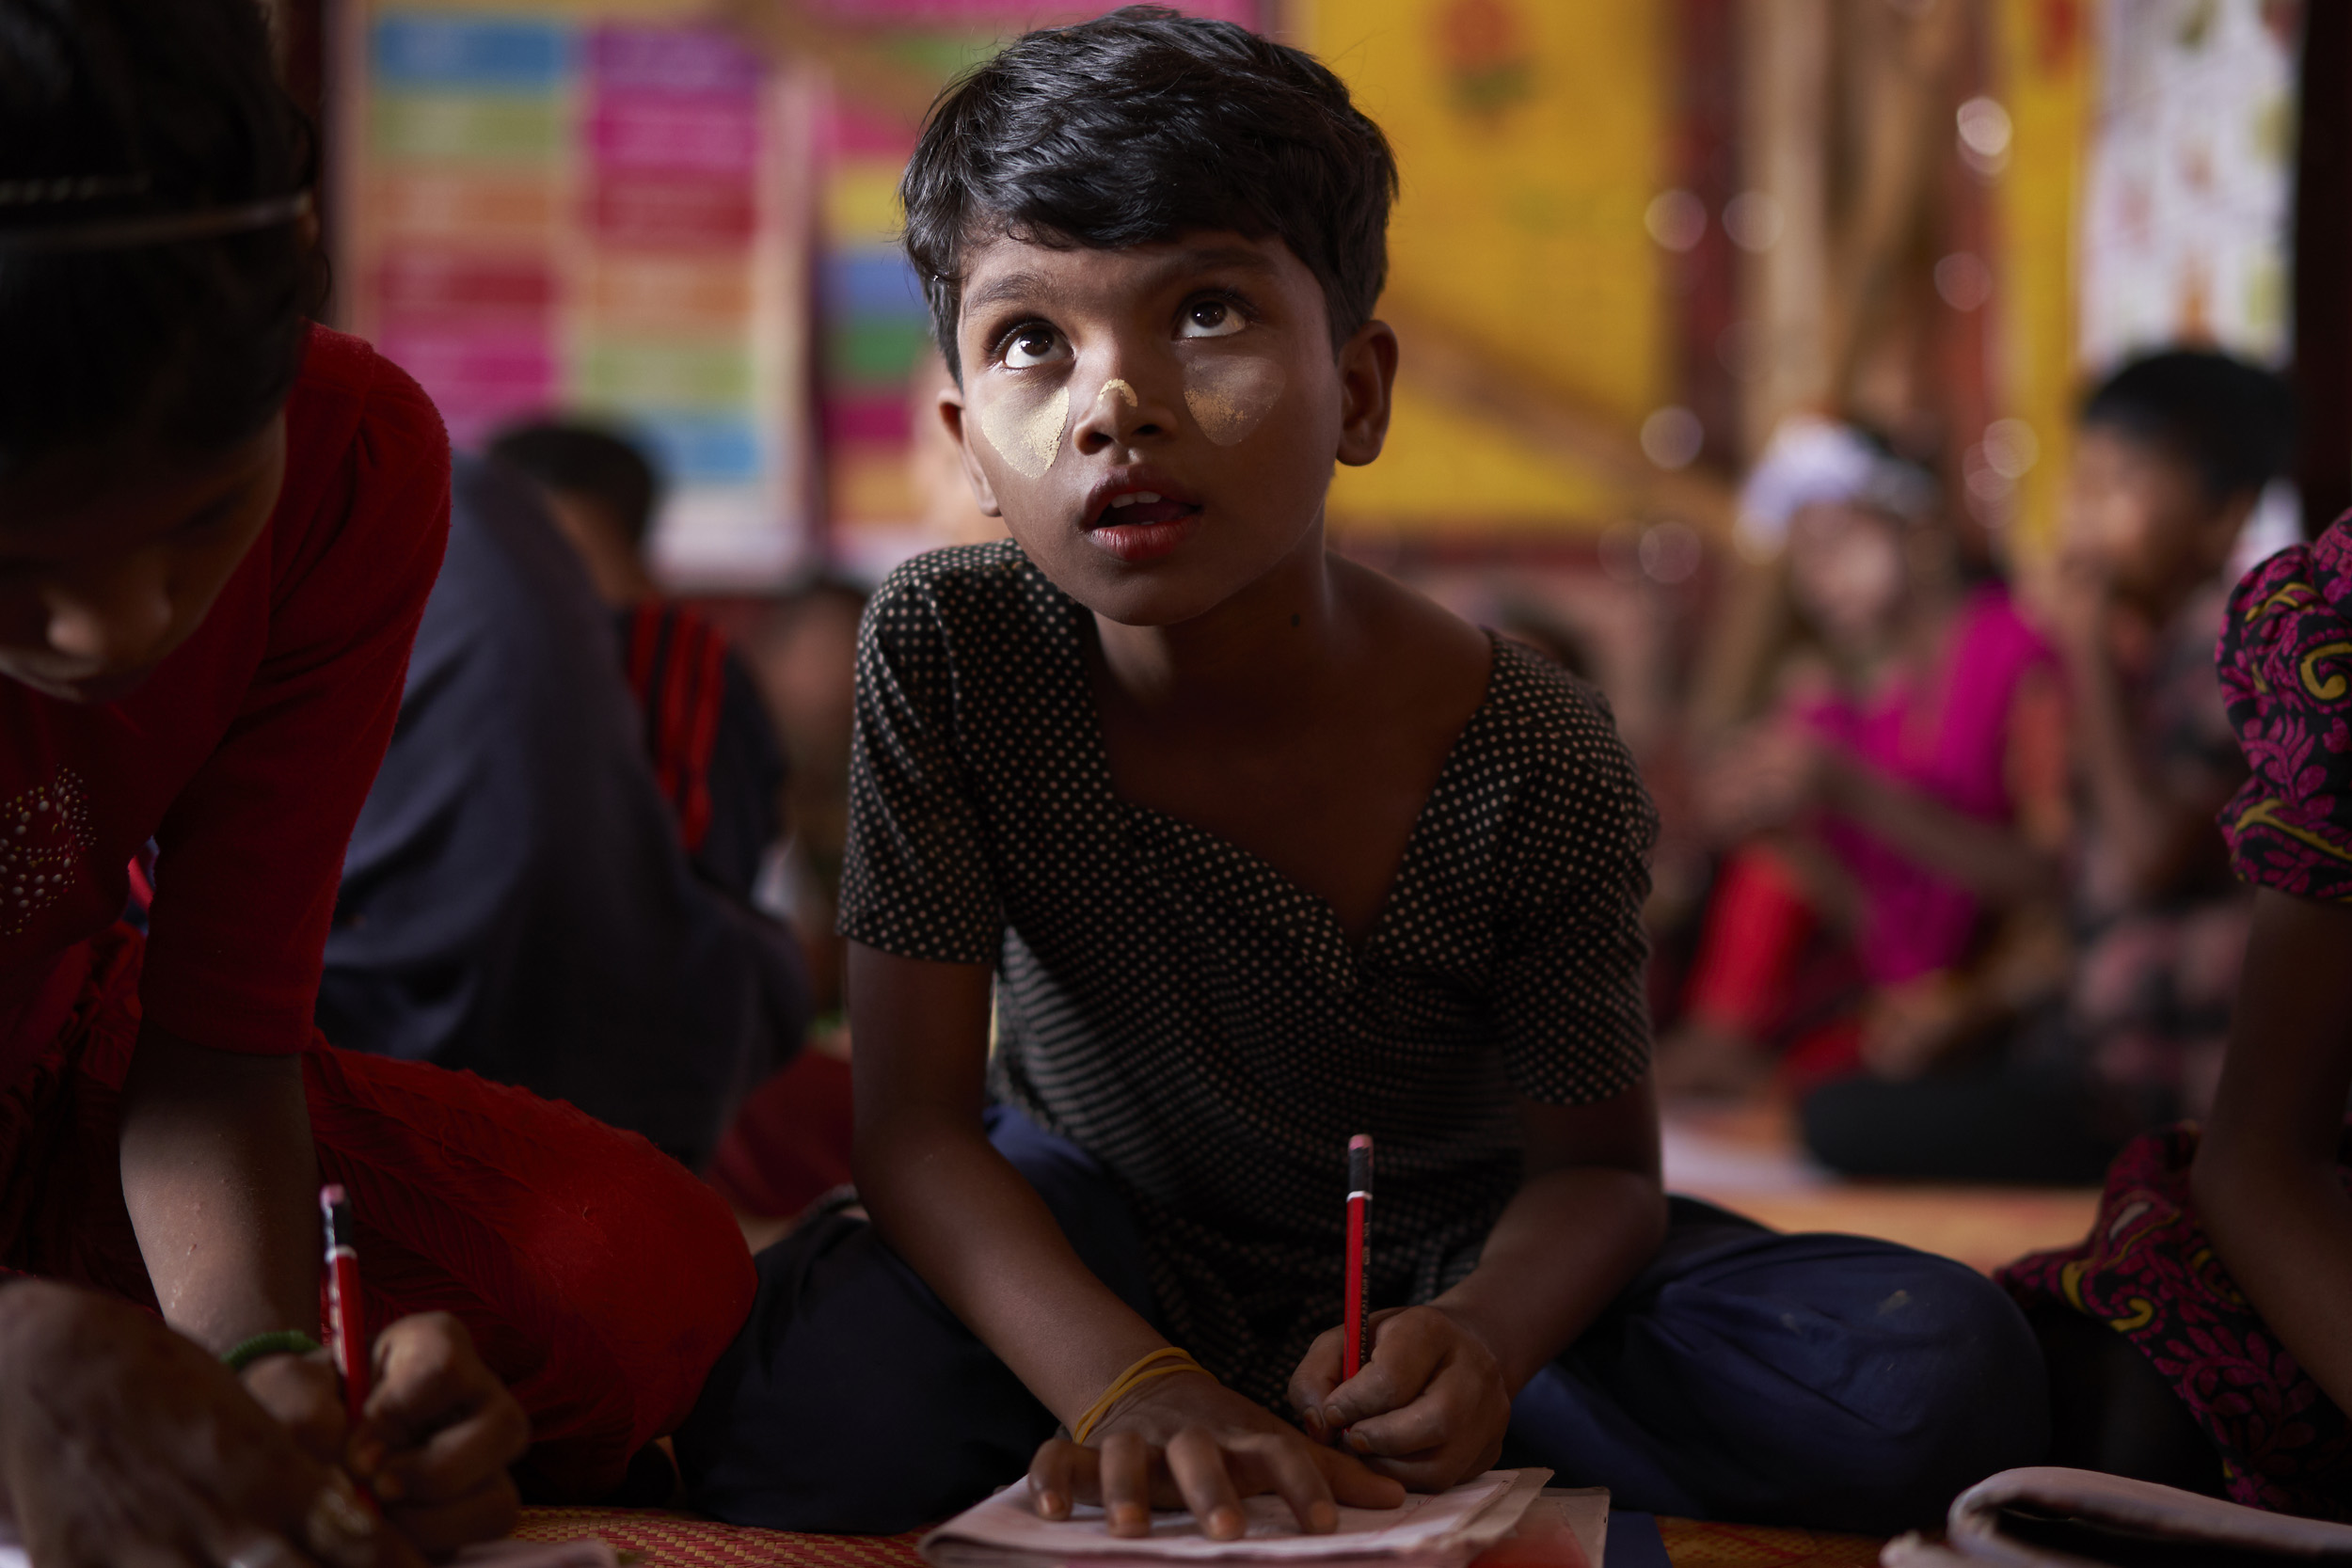 A Rohingya refugee student attends an English class at the Protivar Bikash 1 learning center in Camp 4, at the Kutupalong Expansion Site for Rohingya refugees, Ukhia, Cox's Bazar District, Bangladesh.